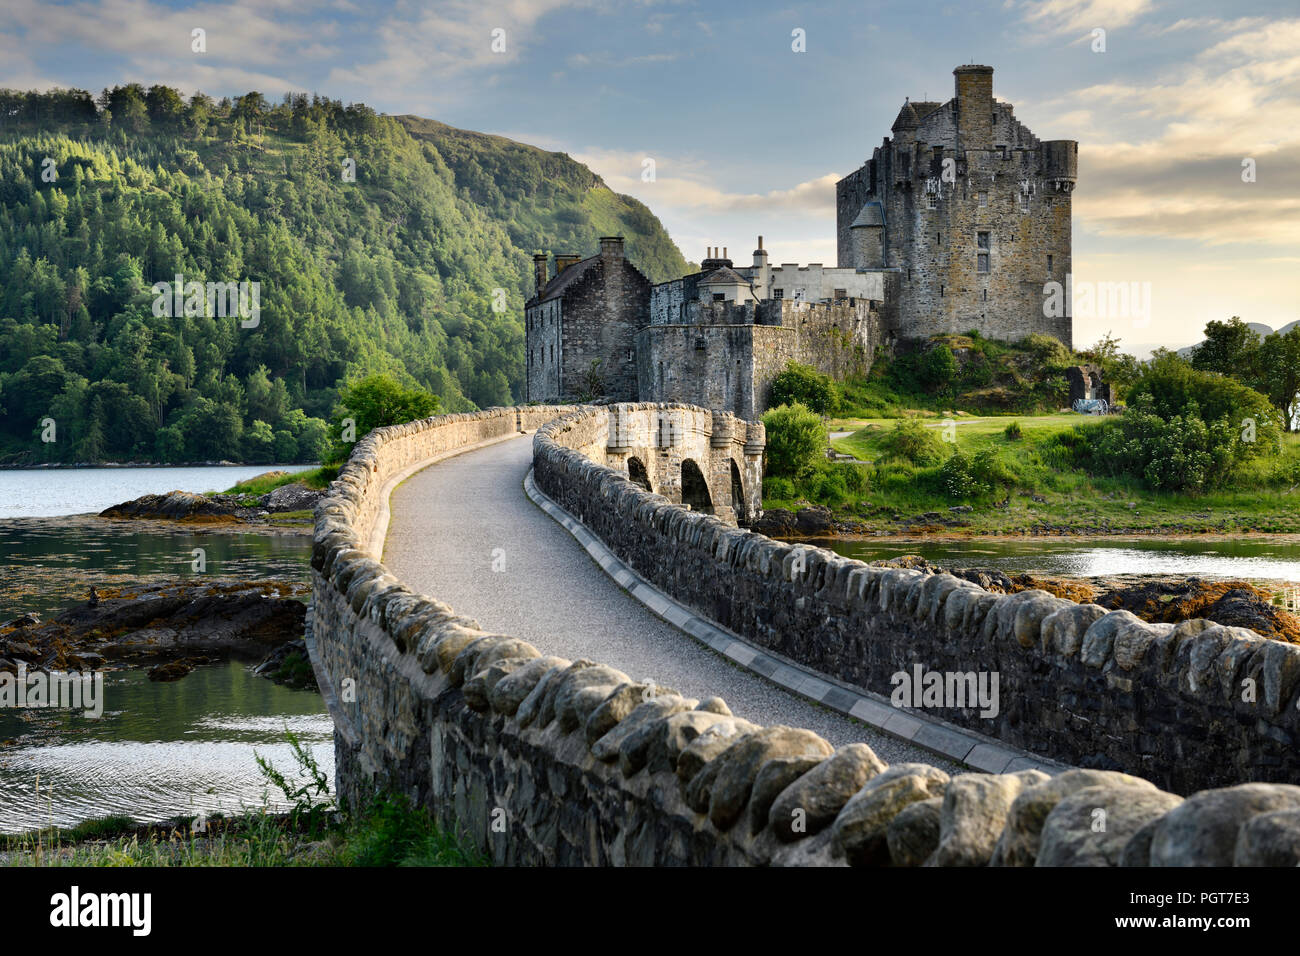 Evening light on restored Eilean Donan Castle on Island at three lochs with added stone arch footbridge Scottish Highlands Scotland UK - Stock Image